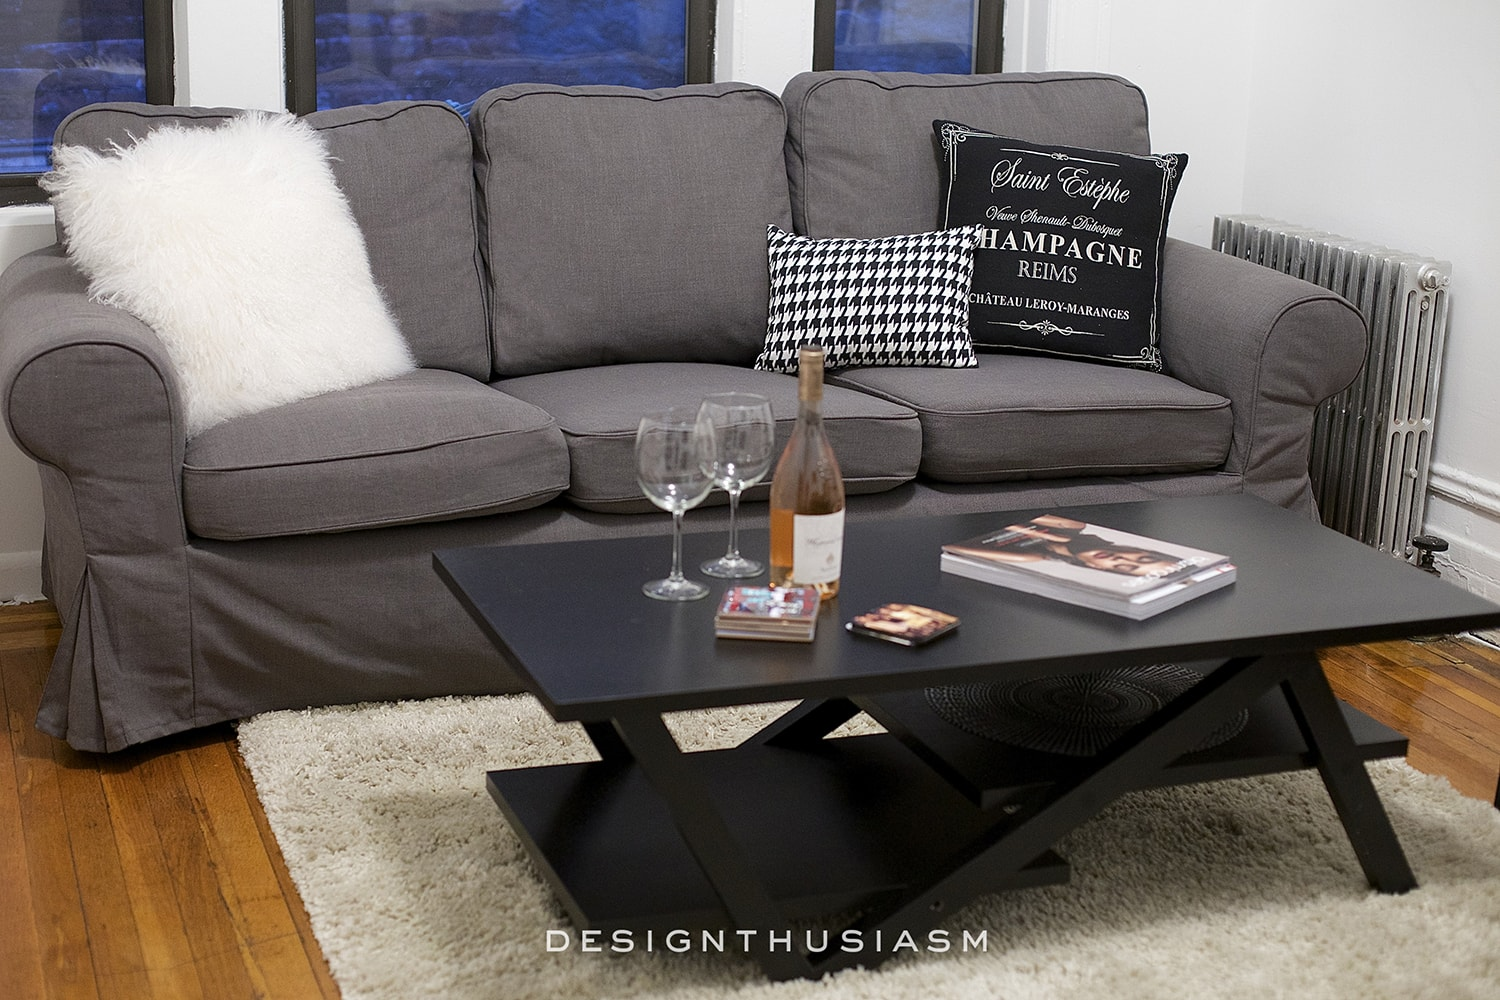 How to Decorate a Small Dark Apartment Living Room | Designthusiasm.com